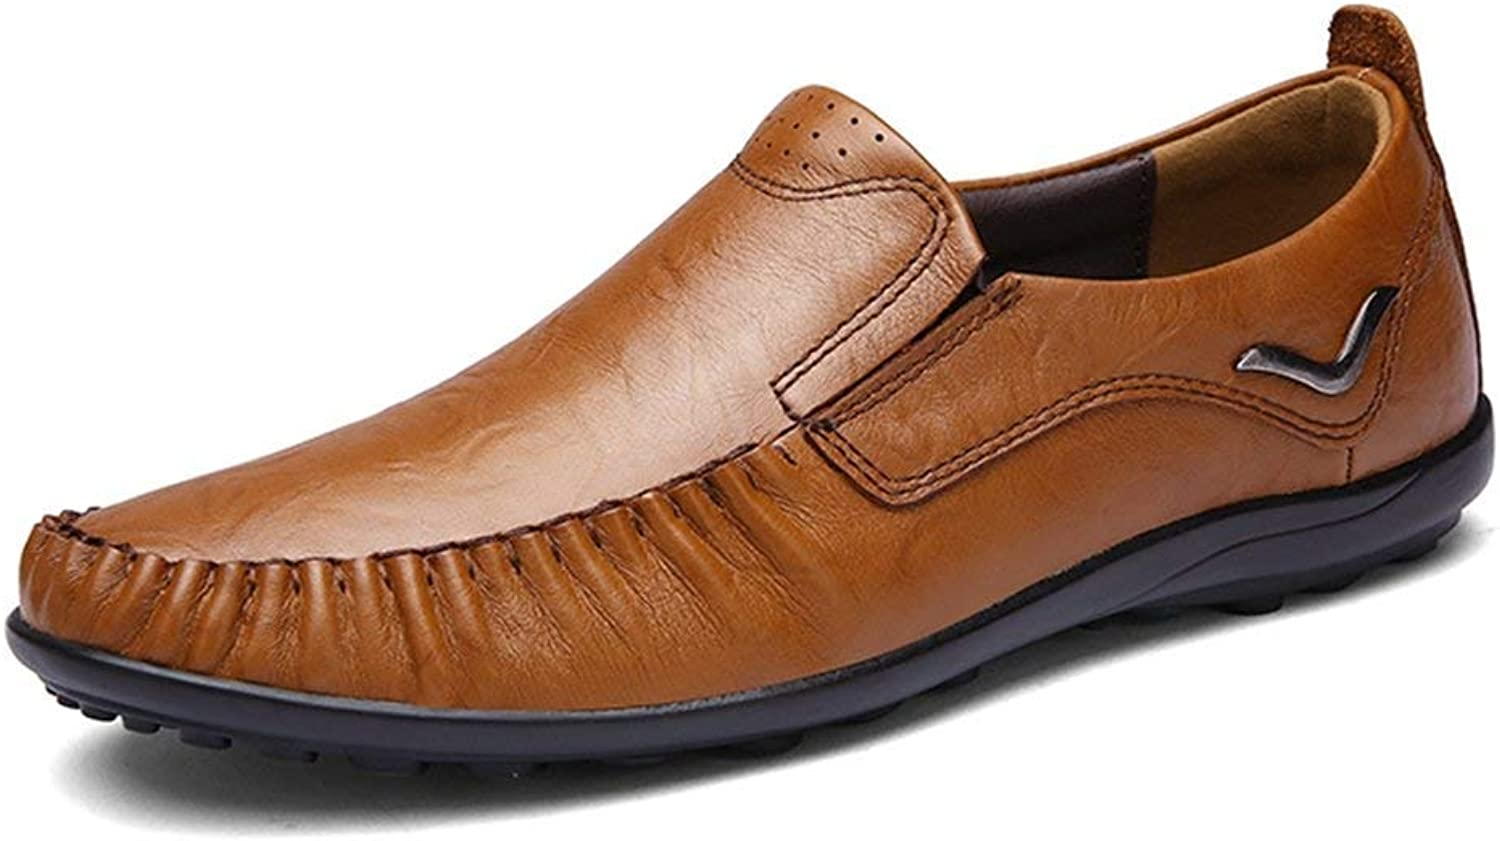 Willsego Ankle Boy's Men's Slip-on Moccasin Toe Casual Loafers (color   Dark Brown, Size   5 UK)